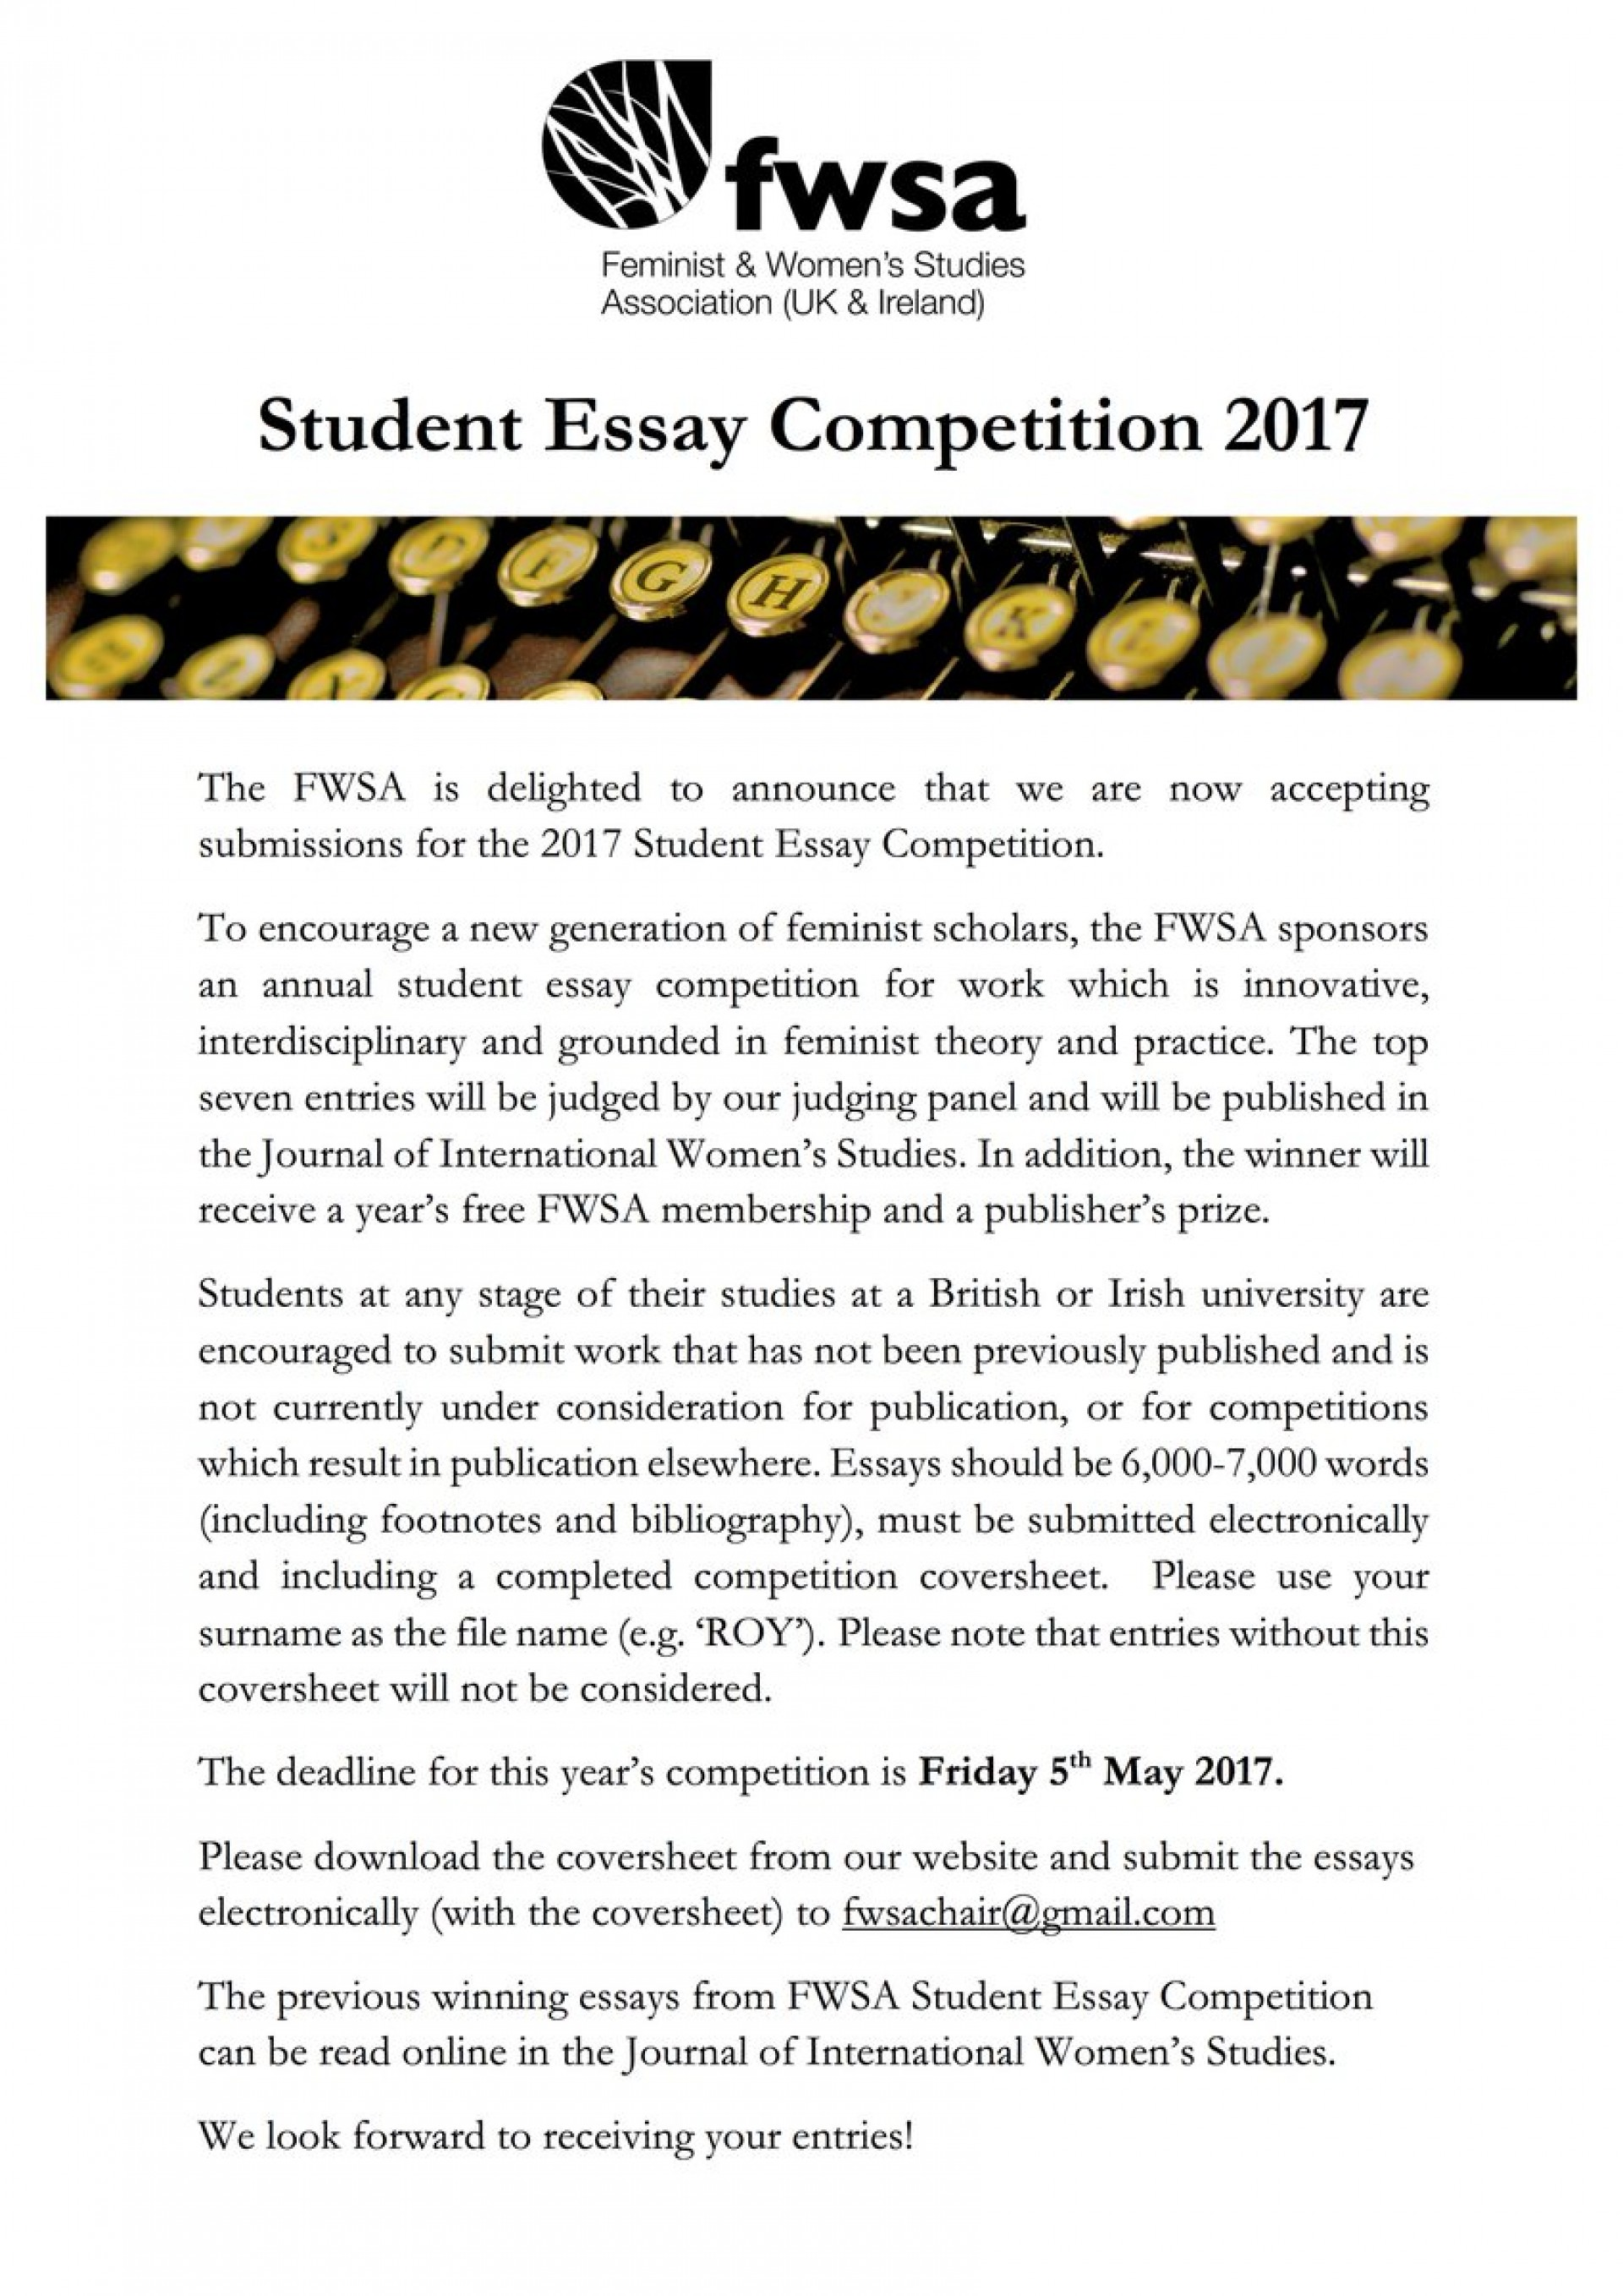 003 We The Students Essay Contest Example Fsz8gxyaa Best Scholarship Rules Winners 1920